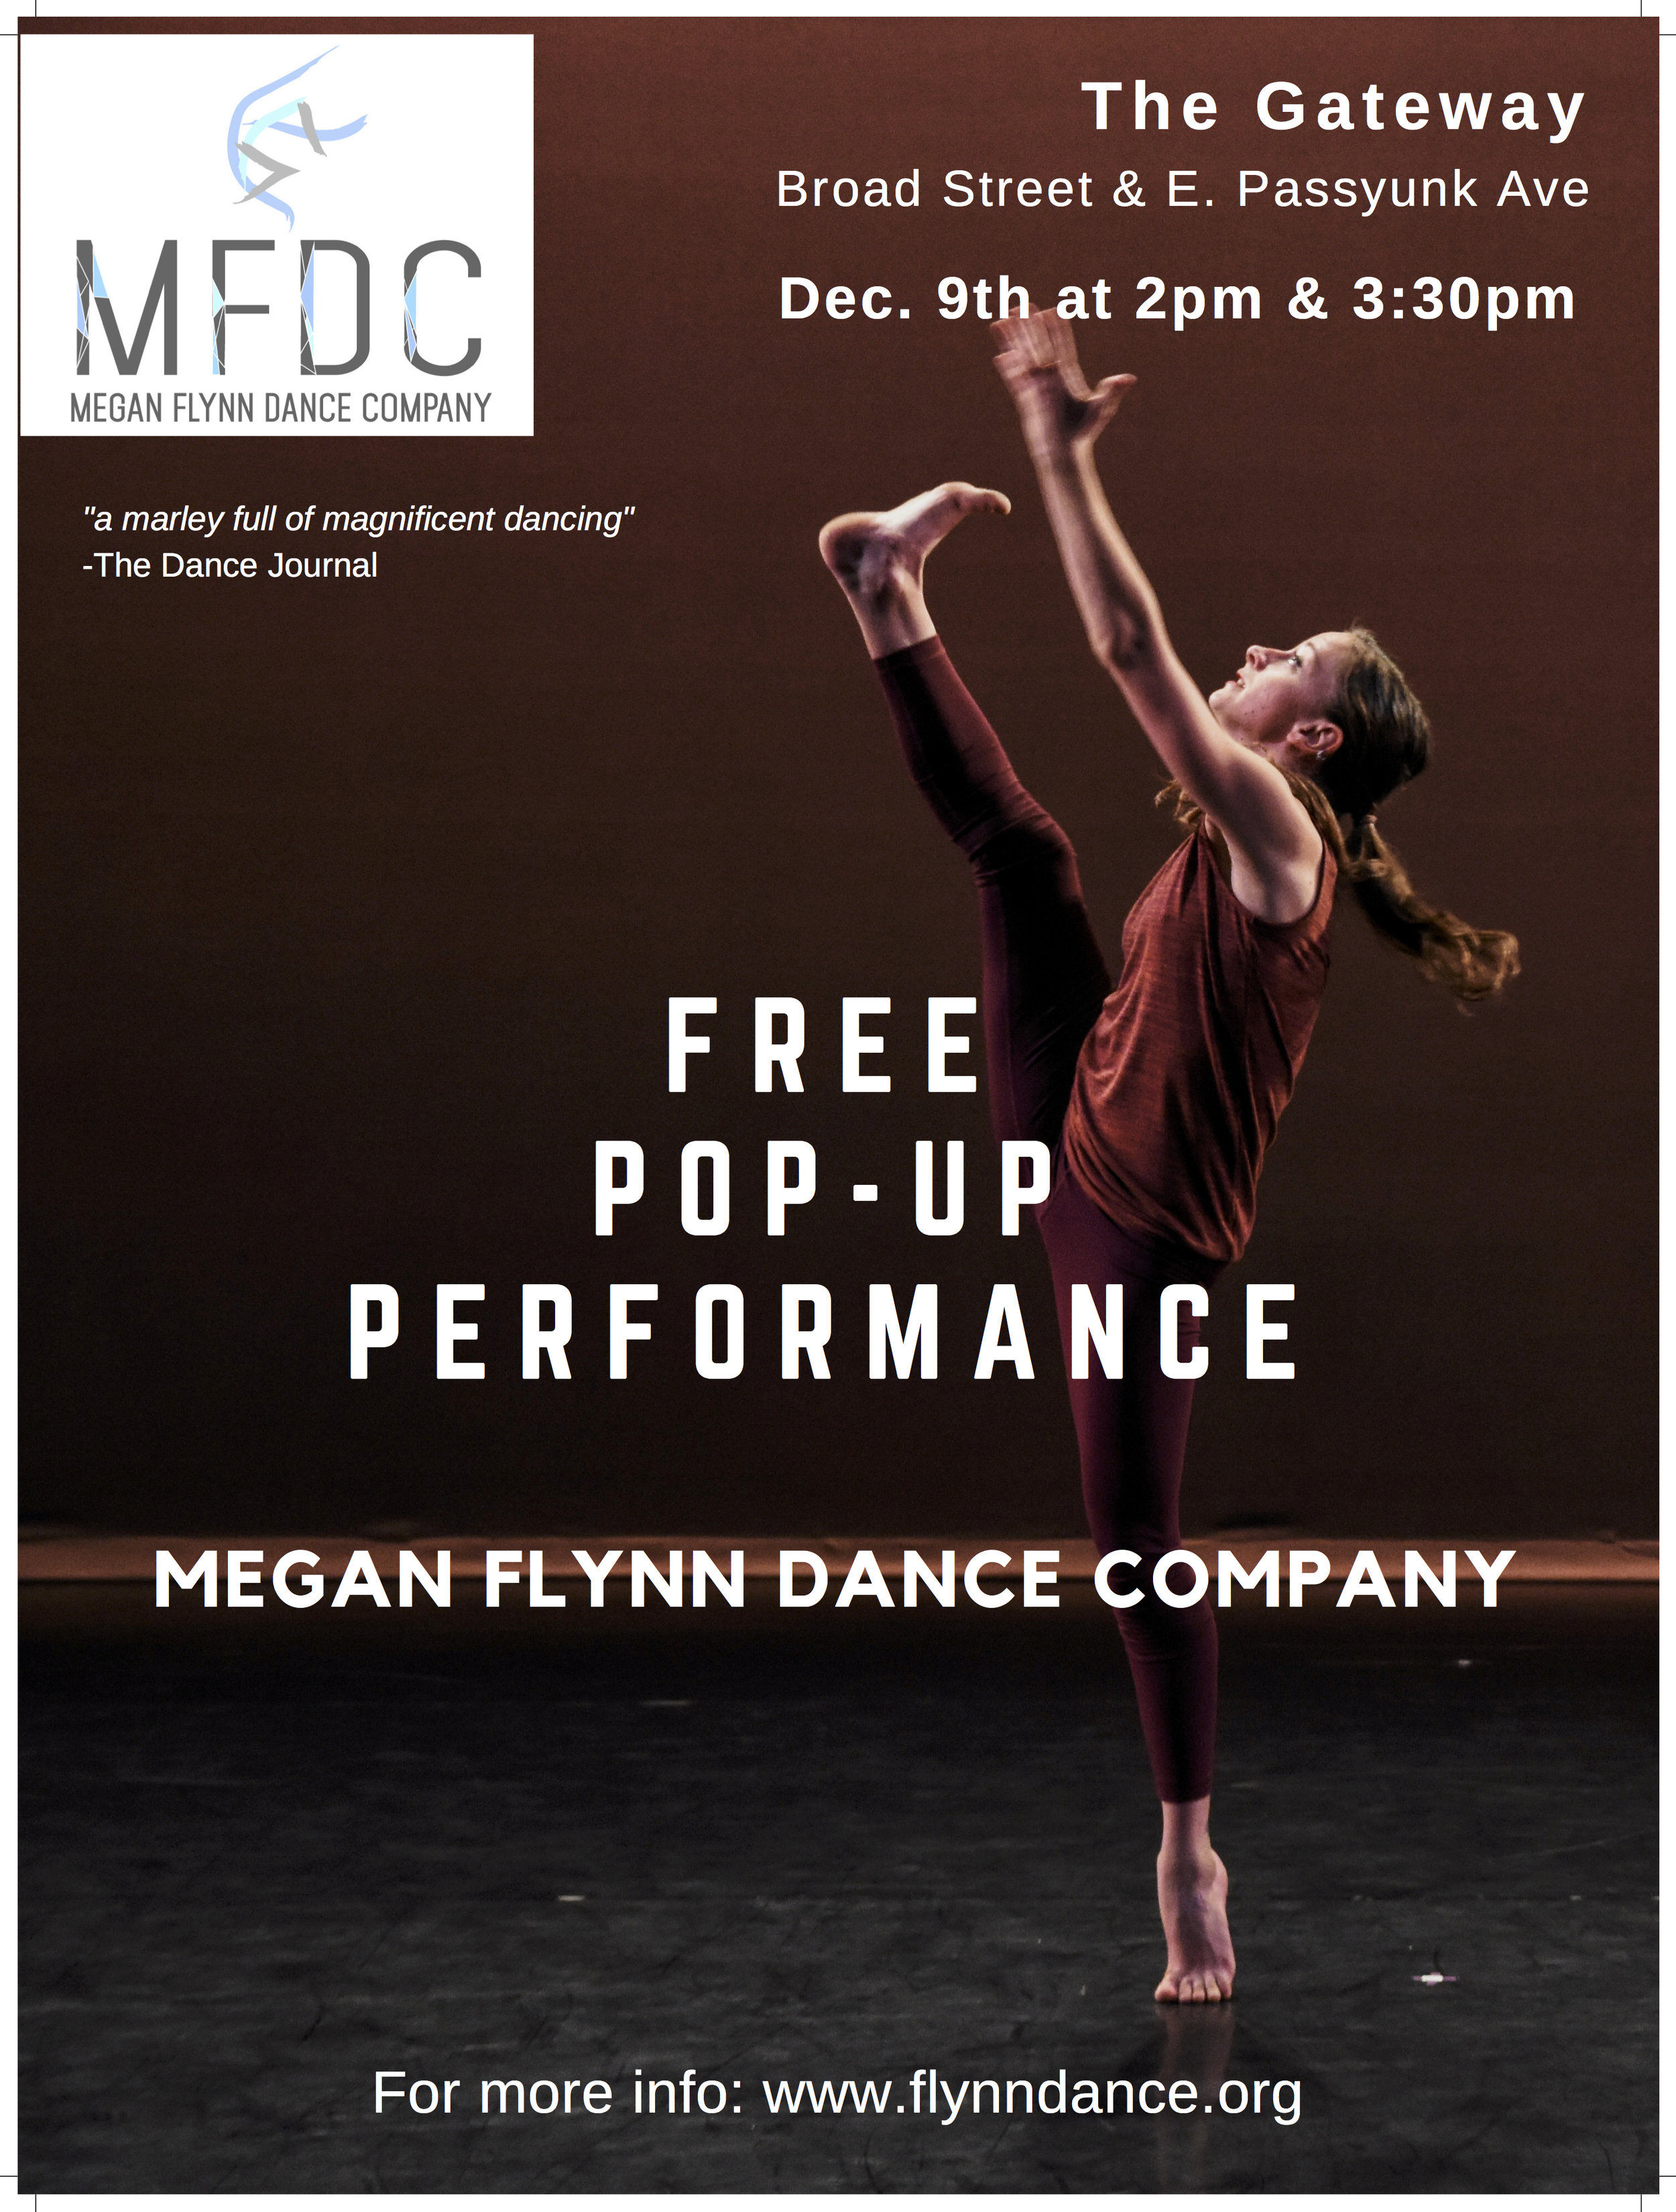 "Megan Flynn Dance Company will perform excerpts of company repertory from the 2016-2017 season with ""A Piece of This Place: A Pop-Up Performance"" during the Second Saturday festivities on East Passyunk Avenue. The company will perform ""We're all a little bit stubborn"" featuring original music composed by Alan Terricciano, which premiered at the Conwell Dance Theater during the 2016 Philadelphia Fringe Festival. The pop-up also marks the Philadelphia premiere of ""All dreams collapsed in one second"", a duet selected for performance at the Actors Fund Arts Center in New York City this year."